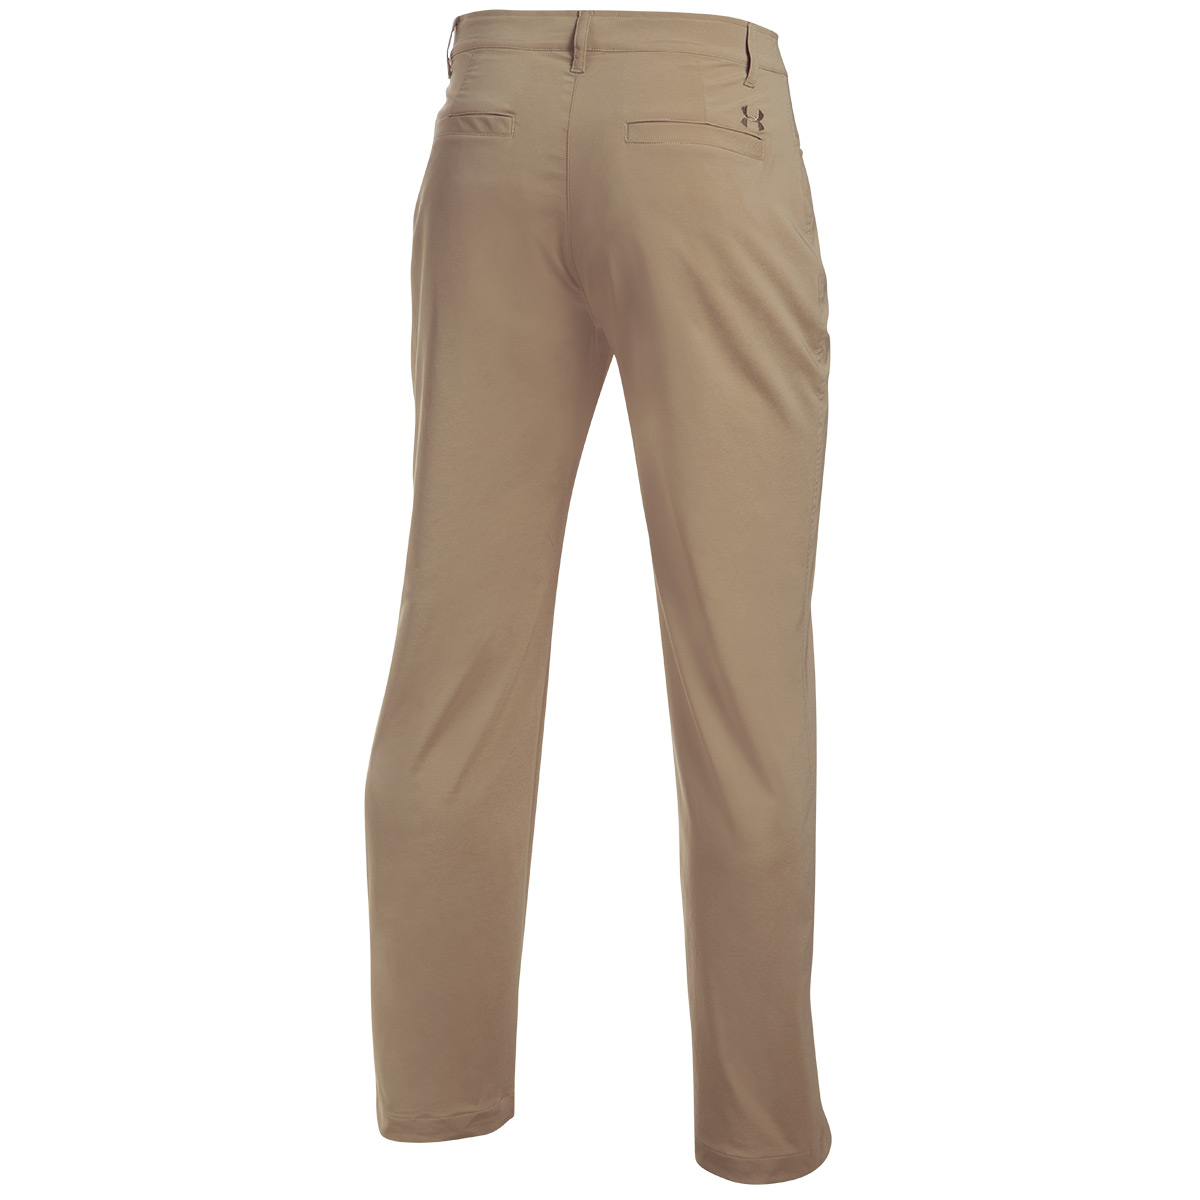 Under-Armour-Mens-Tech-Pant-Soft-Stretch-Golf-Trousers-31-OFF-RRP thumbnail 11